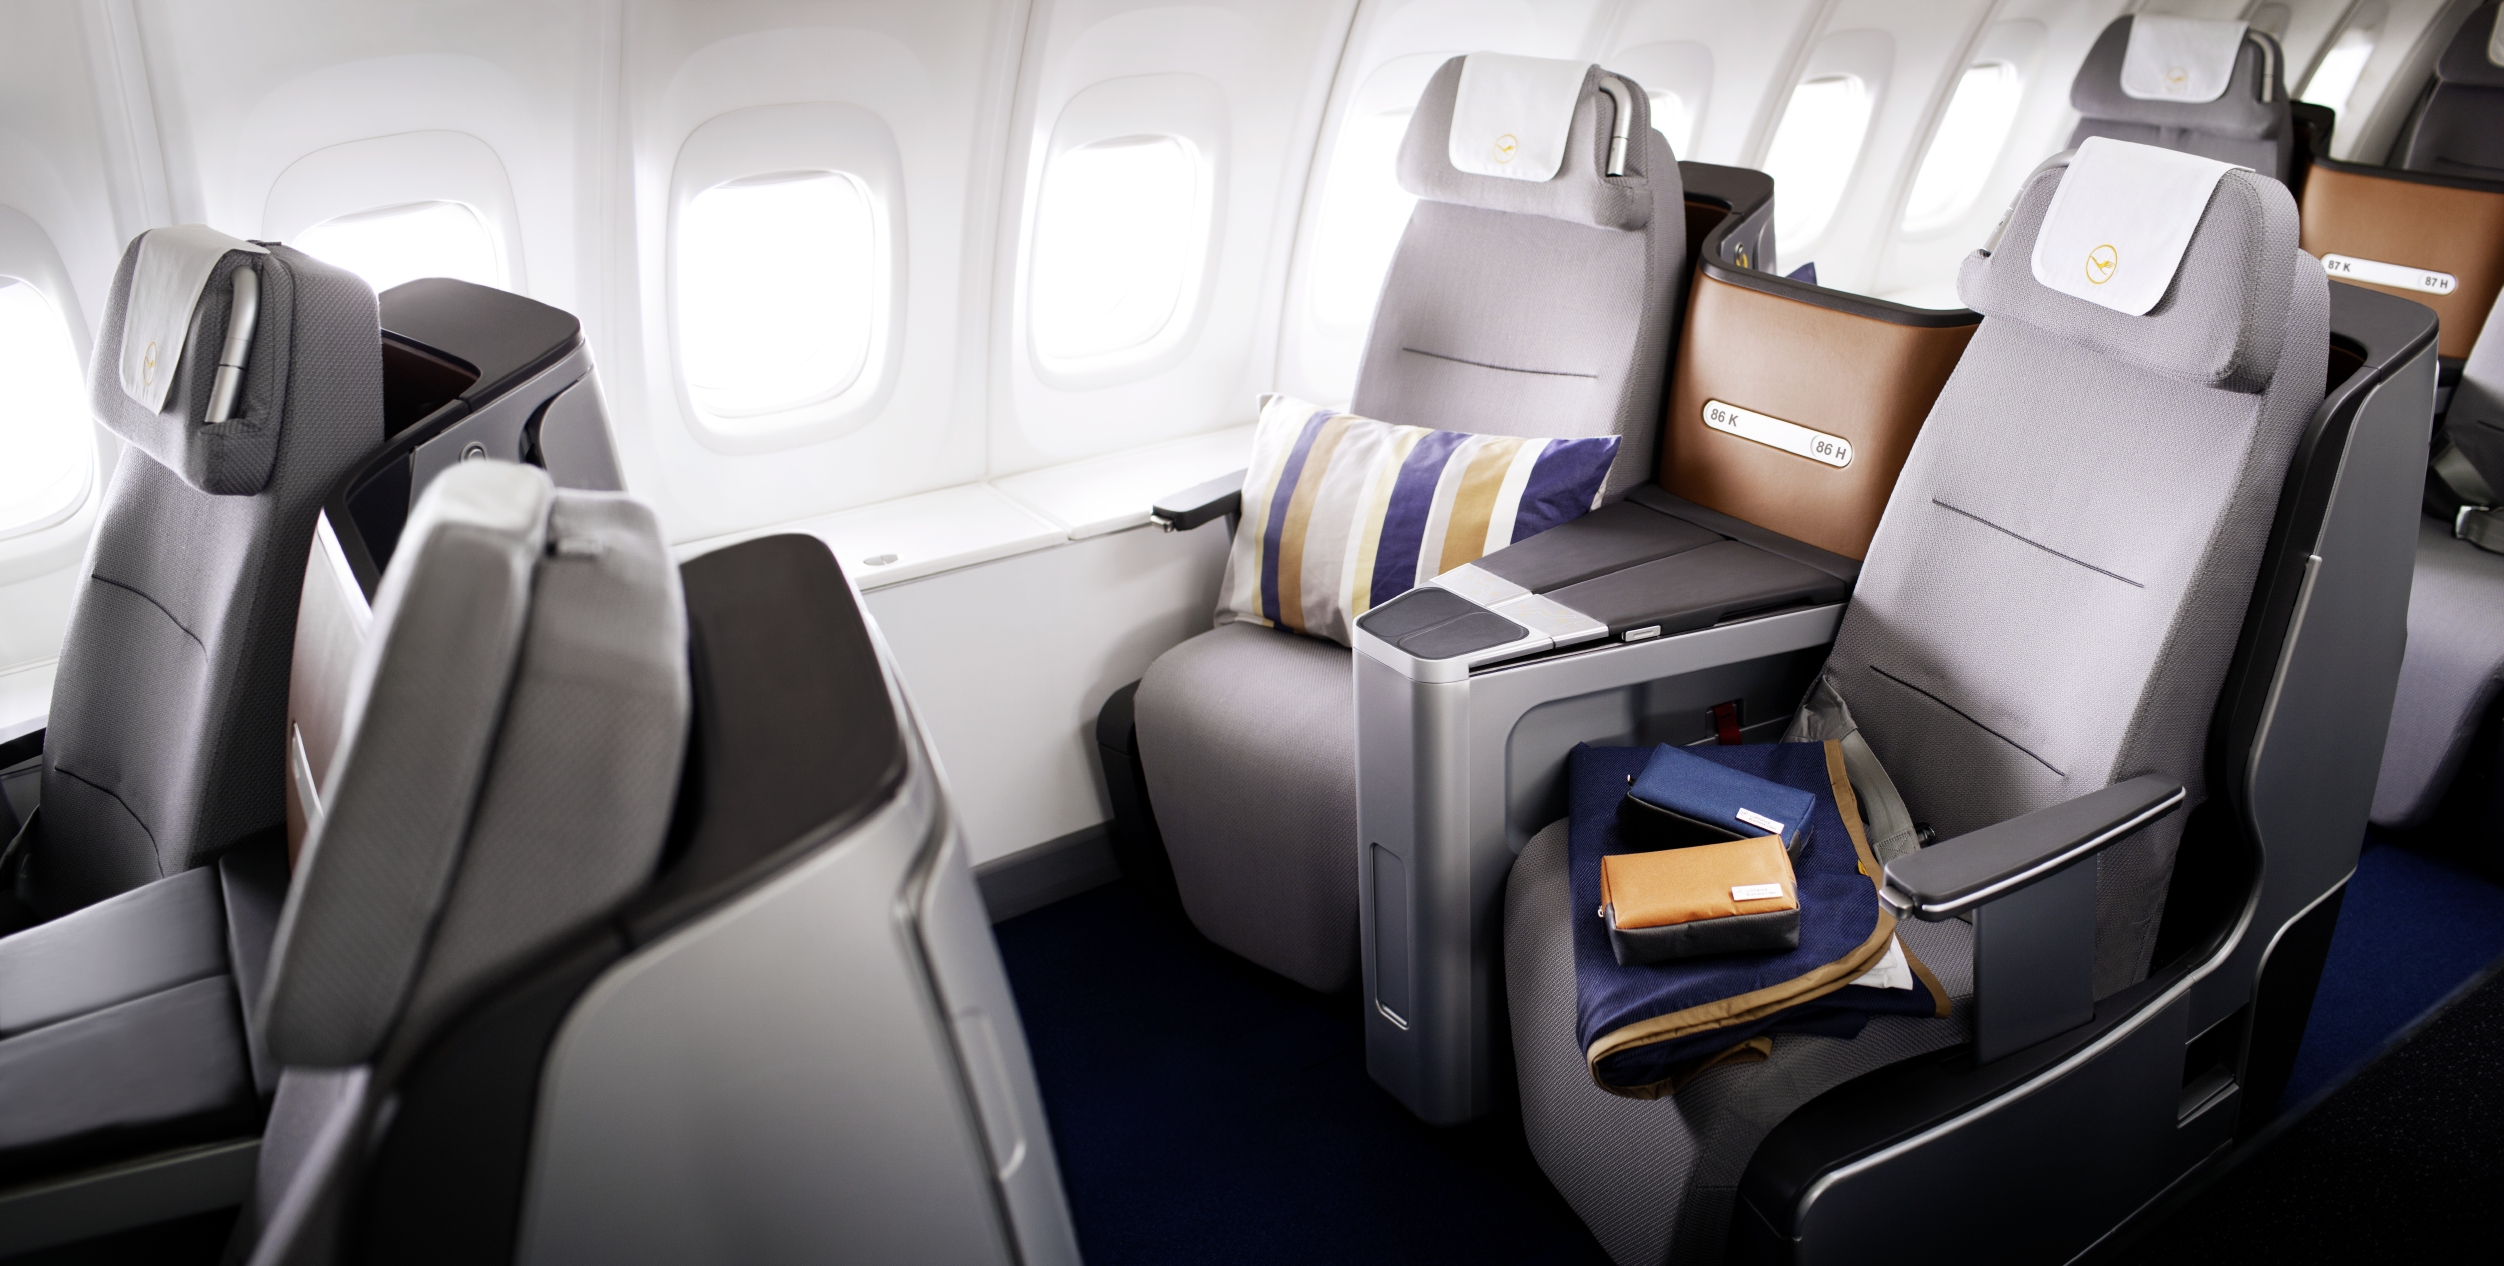 lufthansa to fly airbus a380 to new delhi from october 27 bangalore aviation. Black Bedroom Furniture Sets. Home Design Ideas